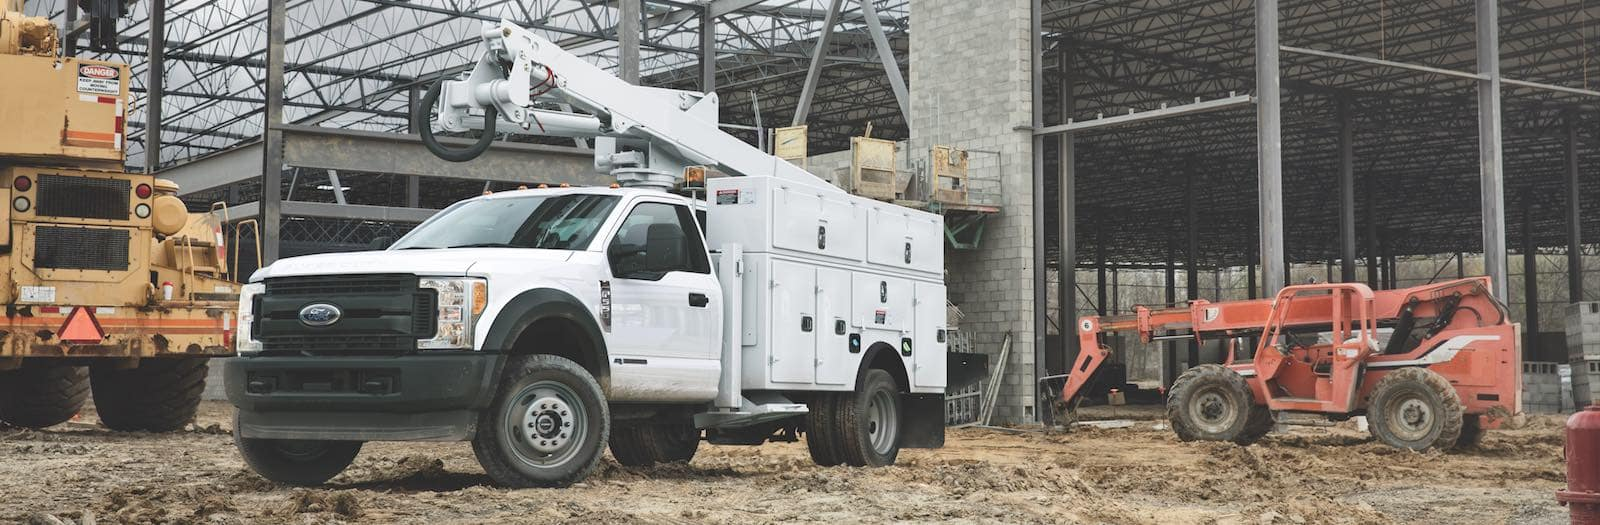 2019 Ford F-550 Engines & Towing Capacity